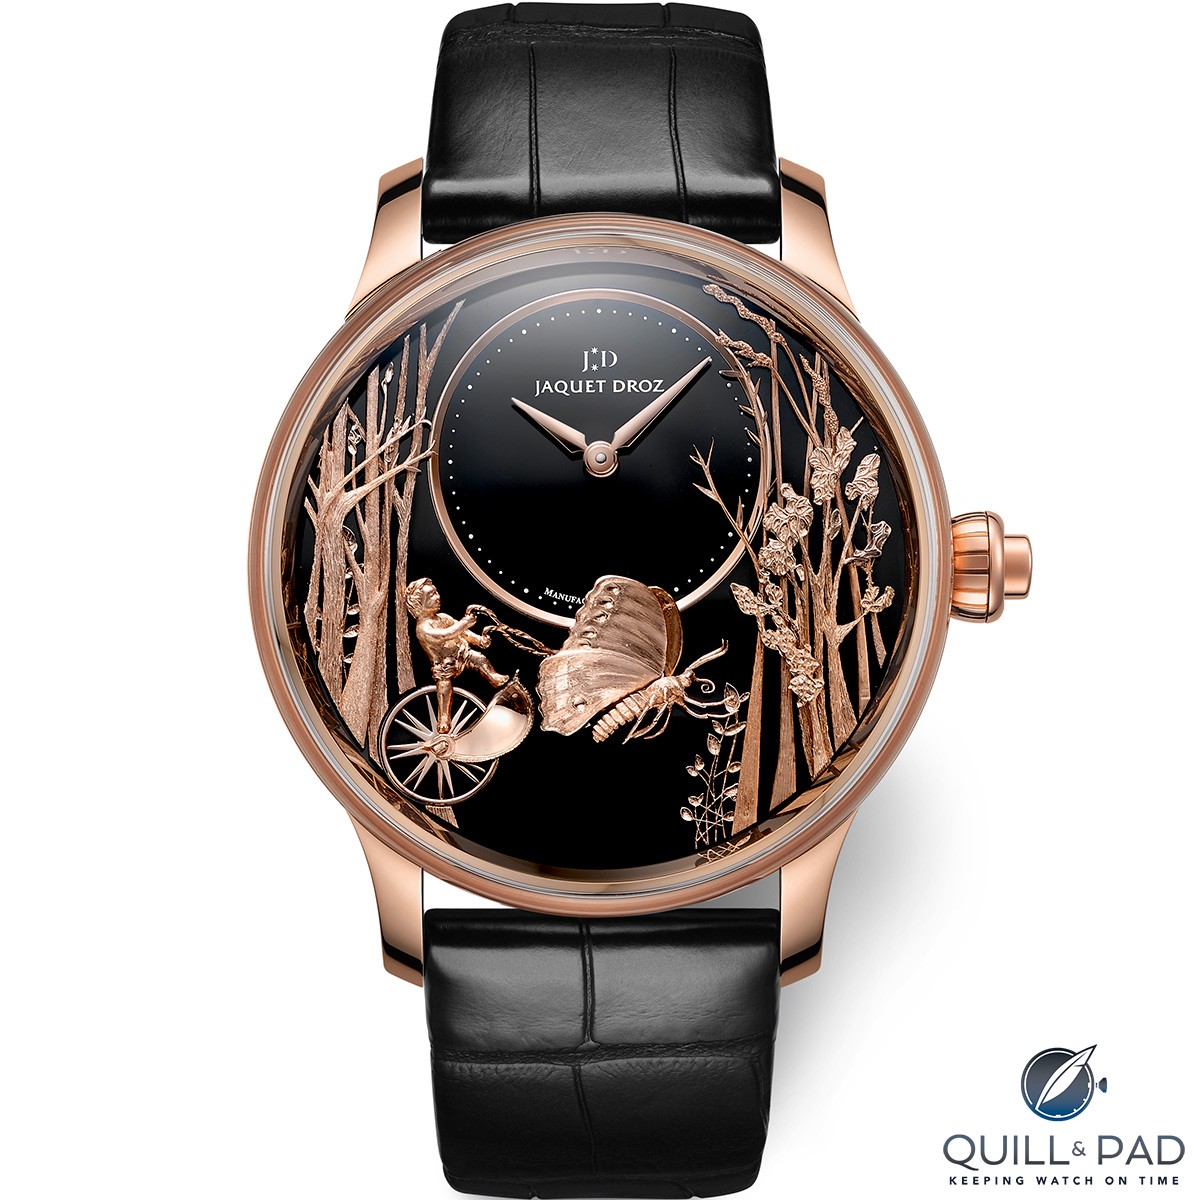 Jaquet Droz Loving Butterfly Automaton in red gold